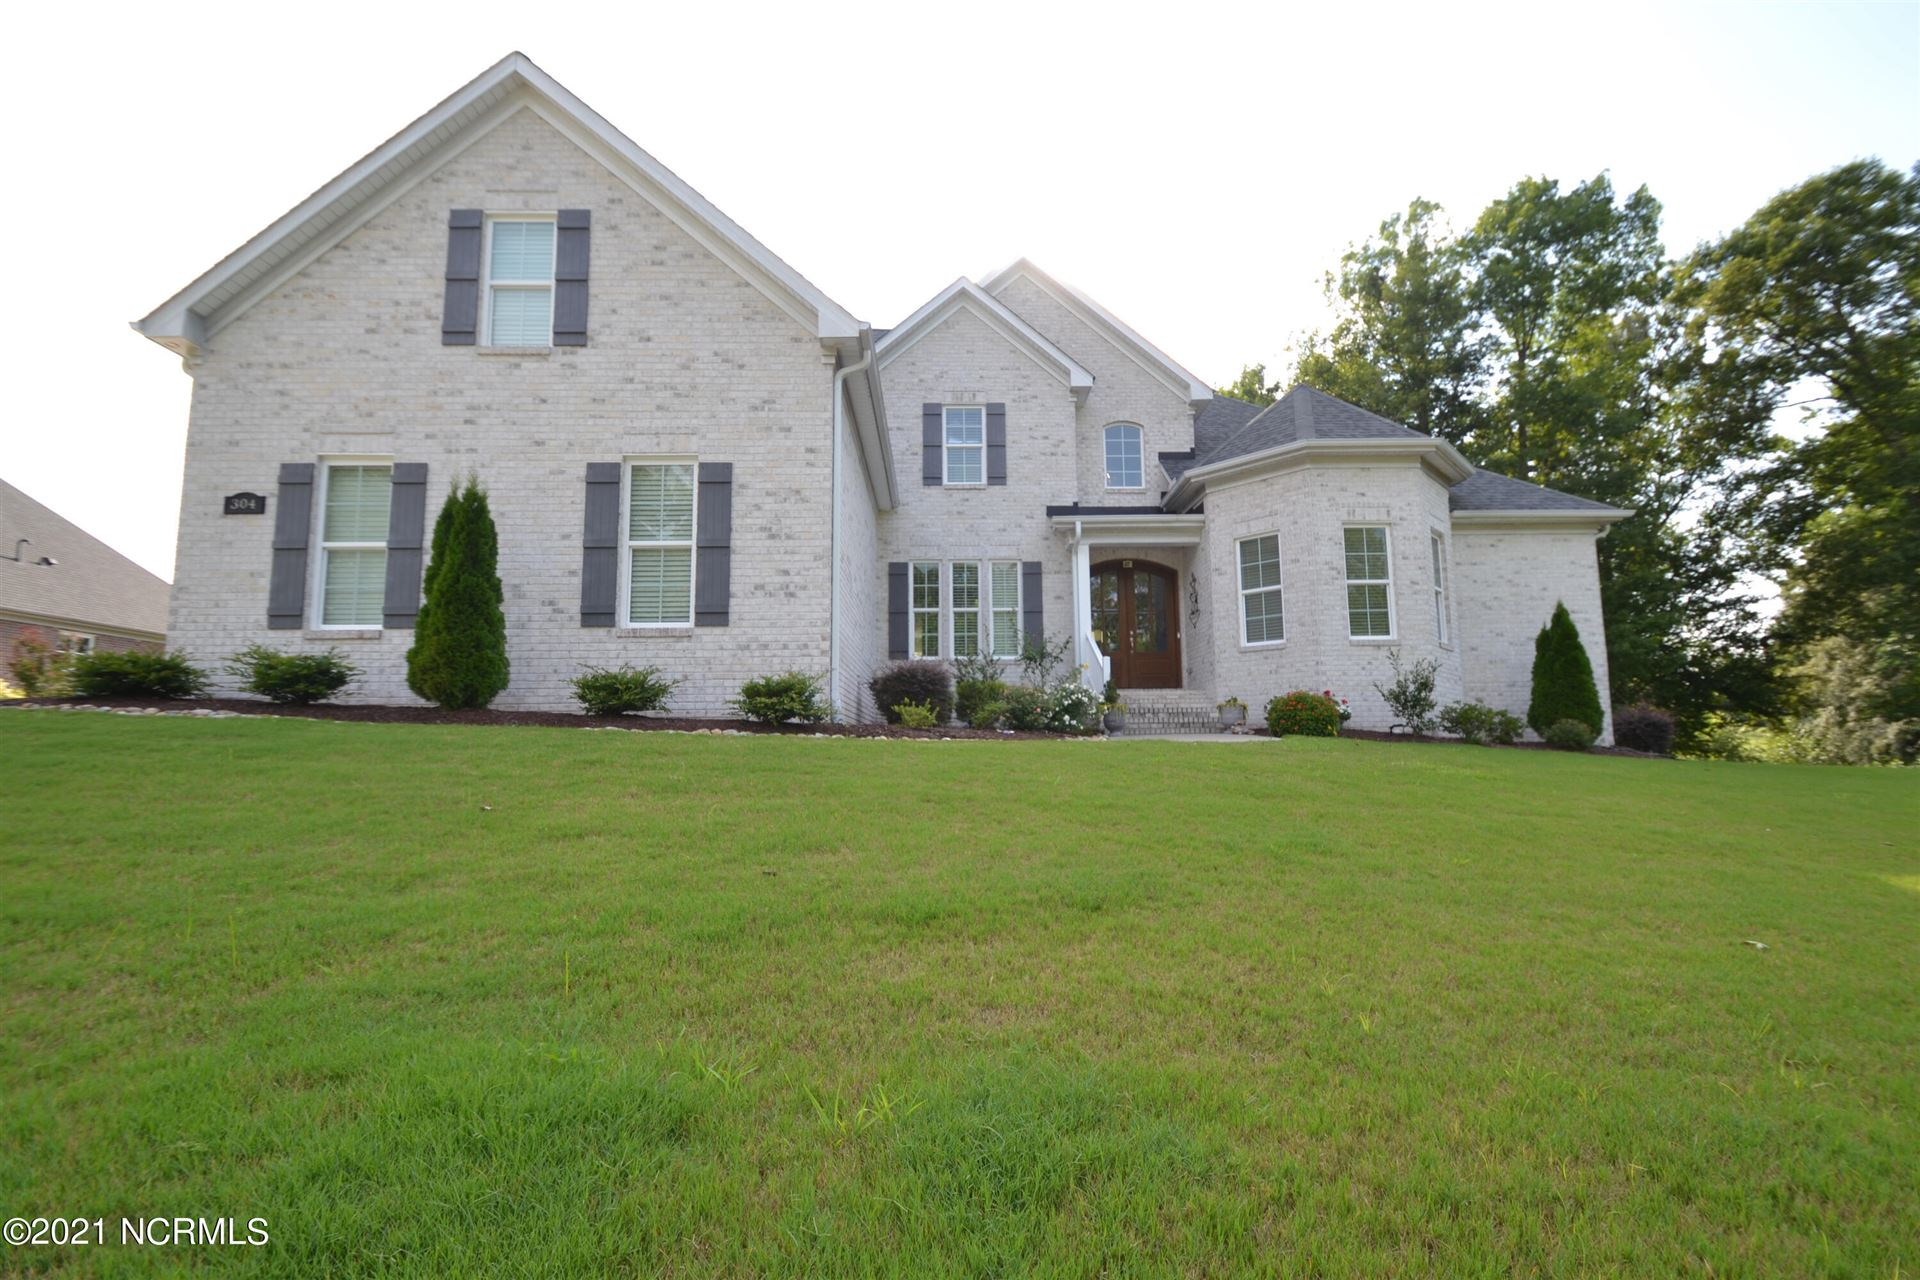 Photo of 304 Golf View Drive, Greenville, NC 27834 (MLS # 100283422)